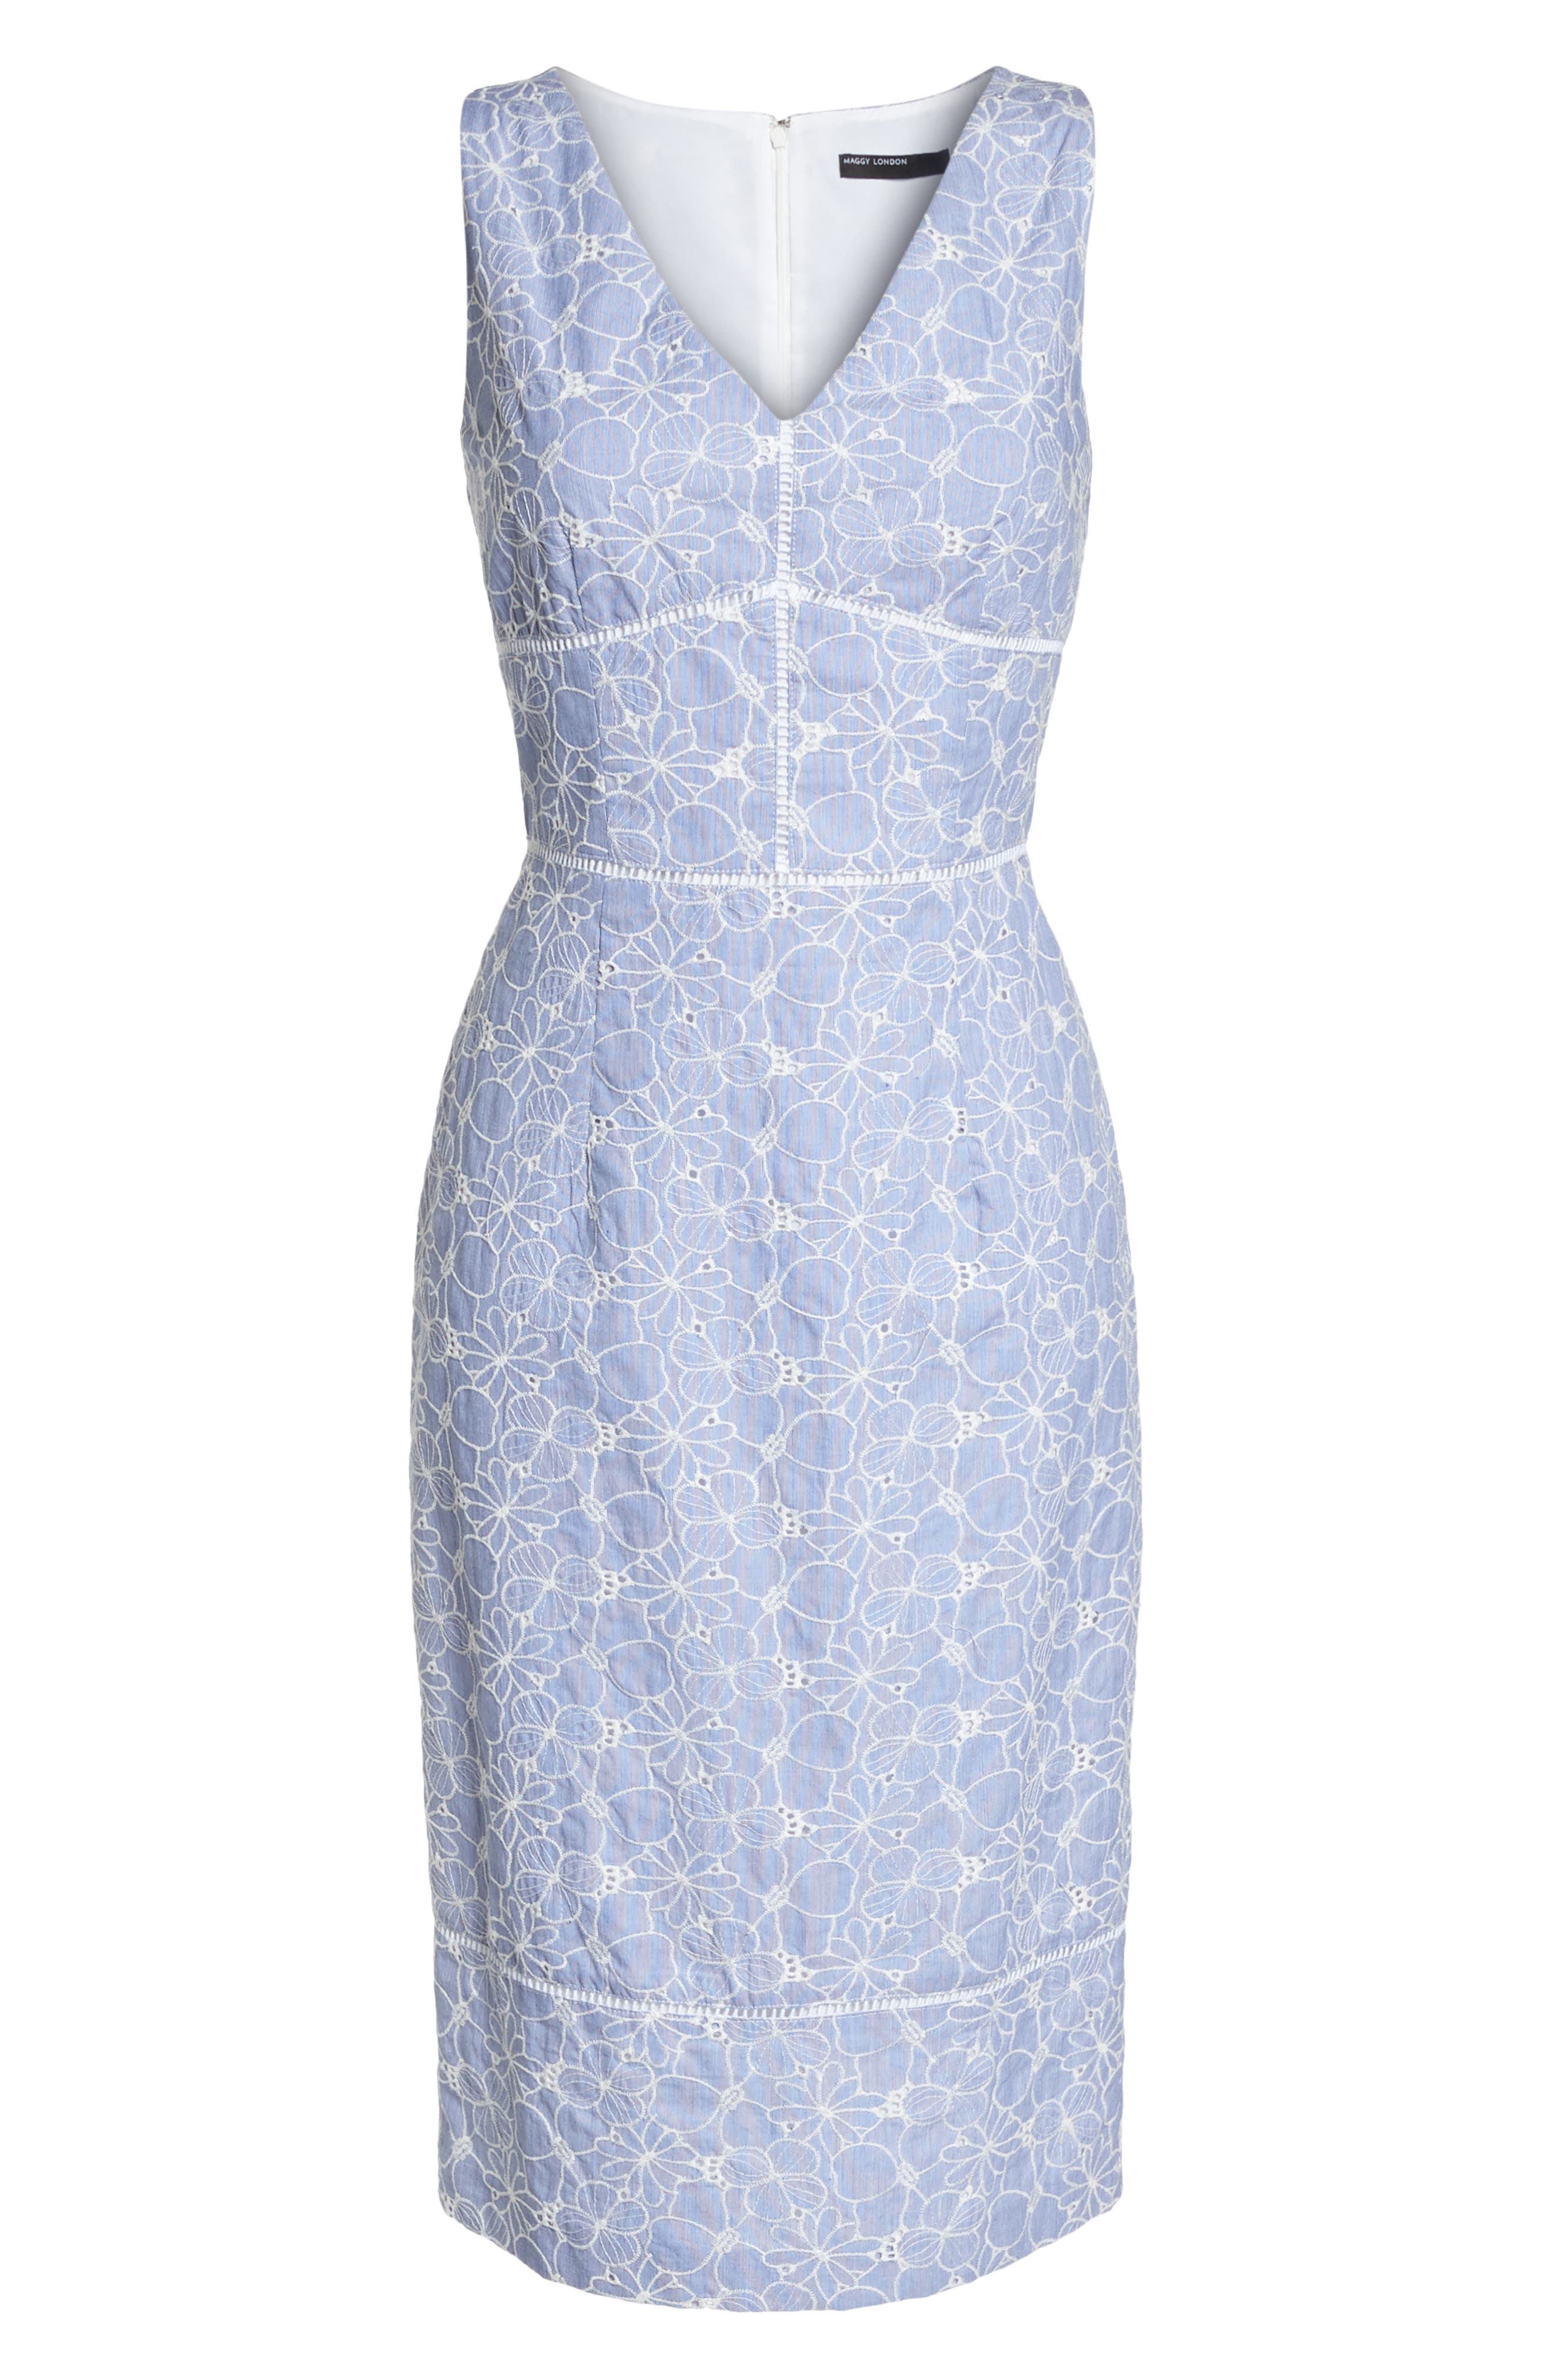 Sleeveless Embroidered Sheath Dress,                             Alternate thumbnail 7, color,                             Blue/ White